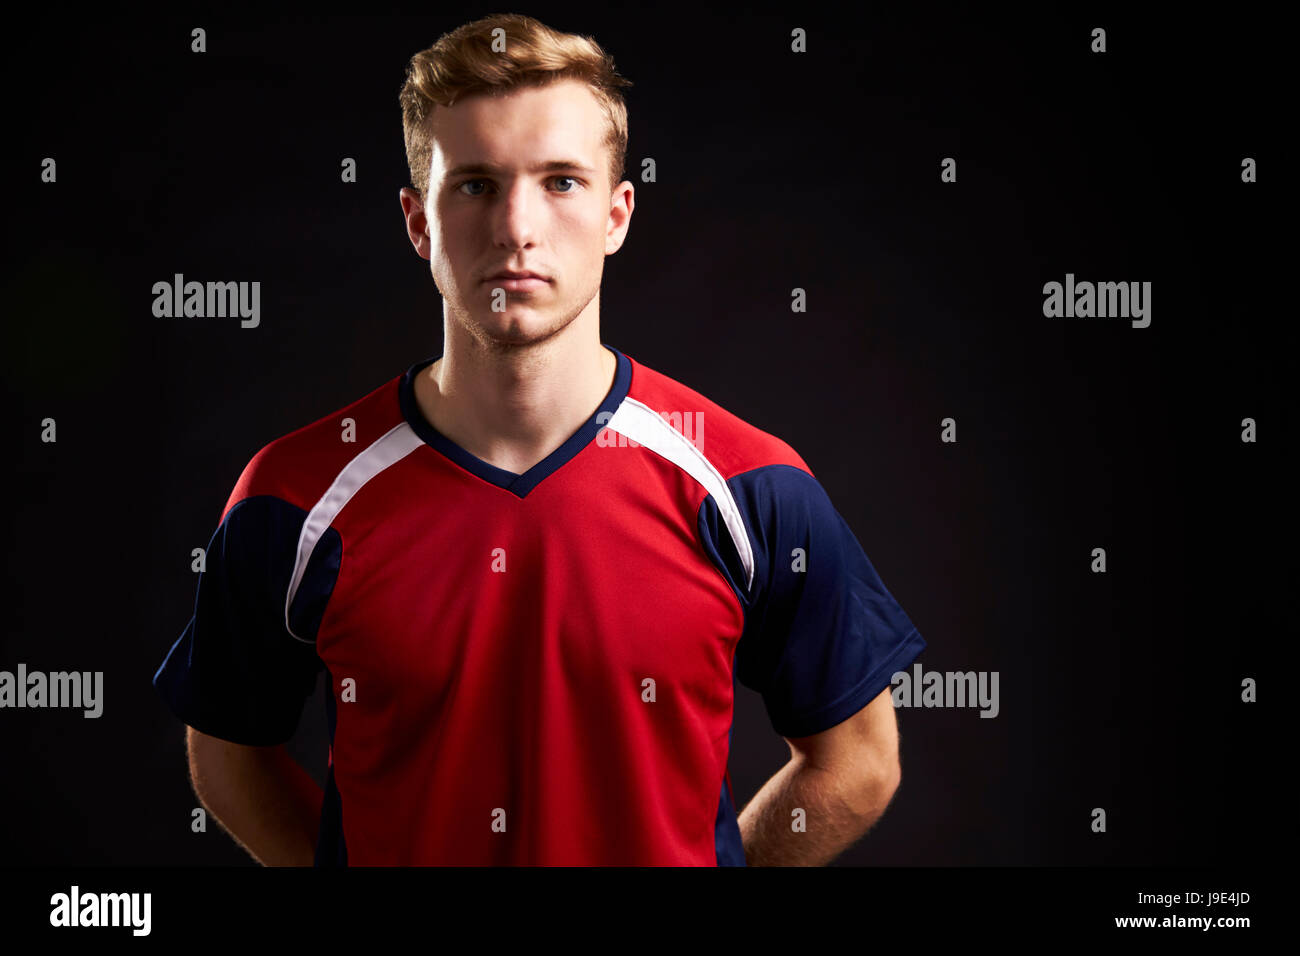 Portrait Of Professional Soccer Player In Studio - Stock Image